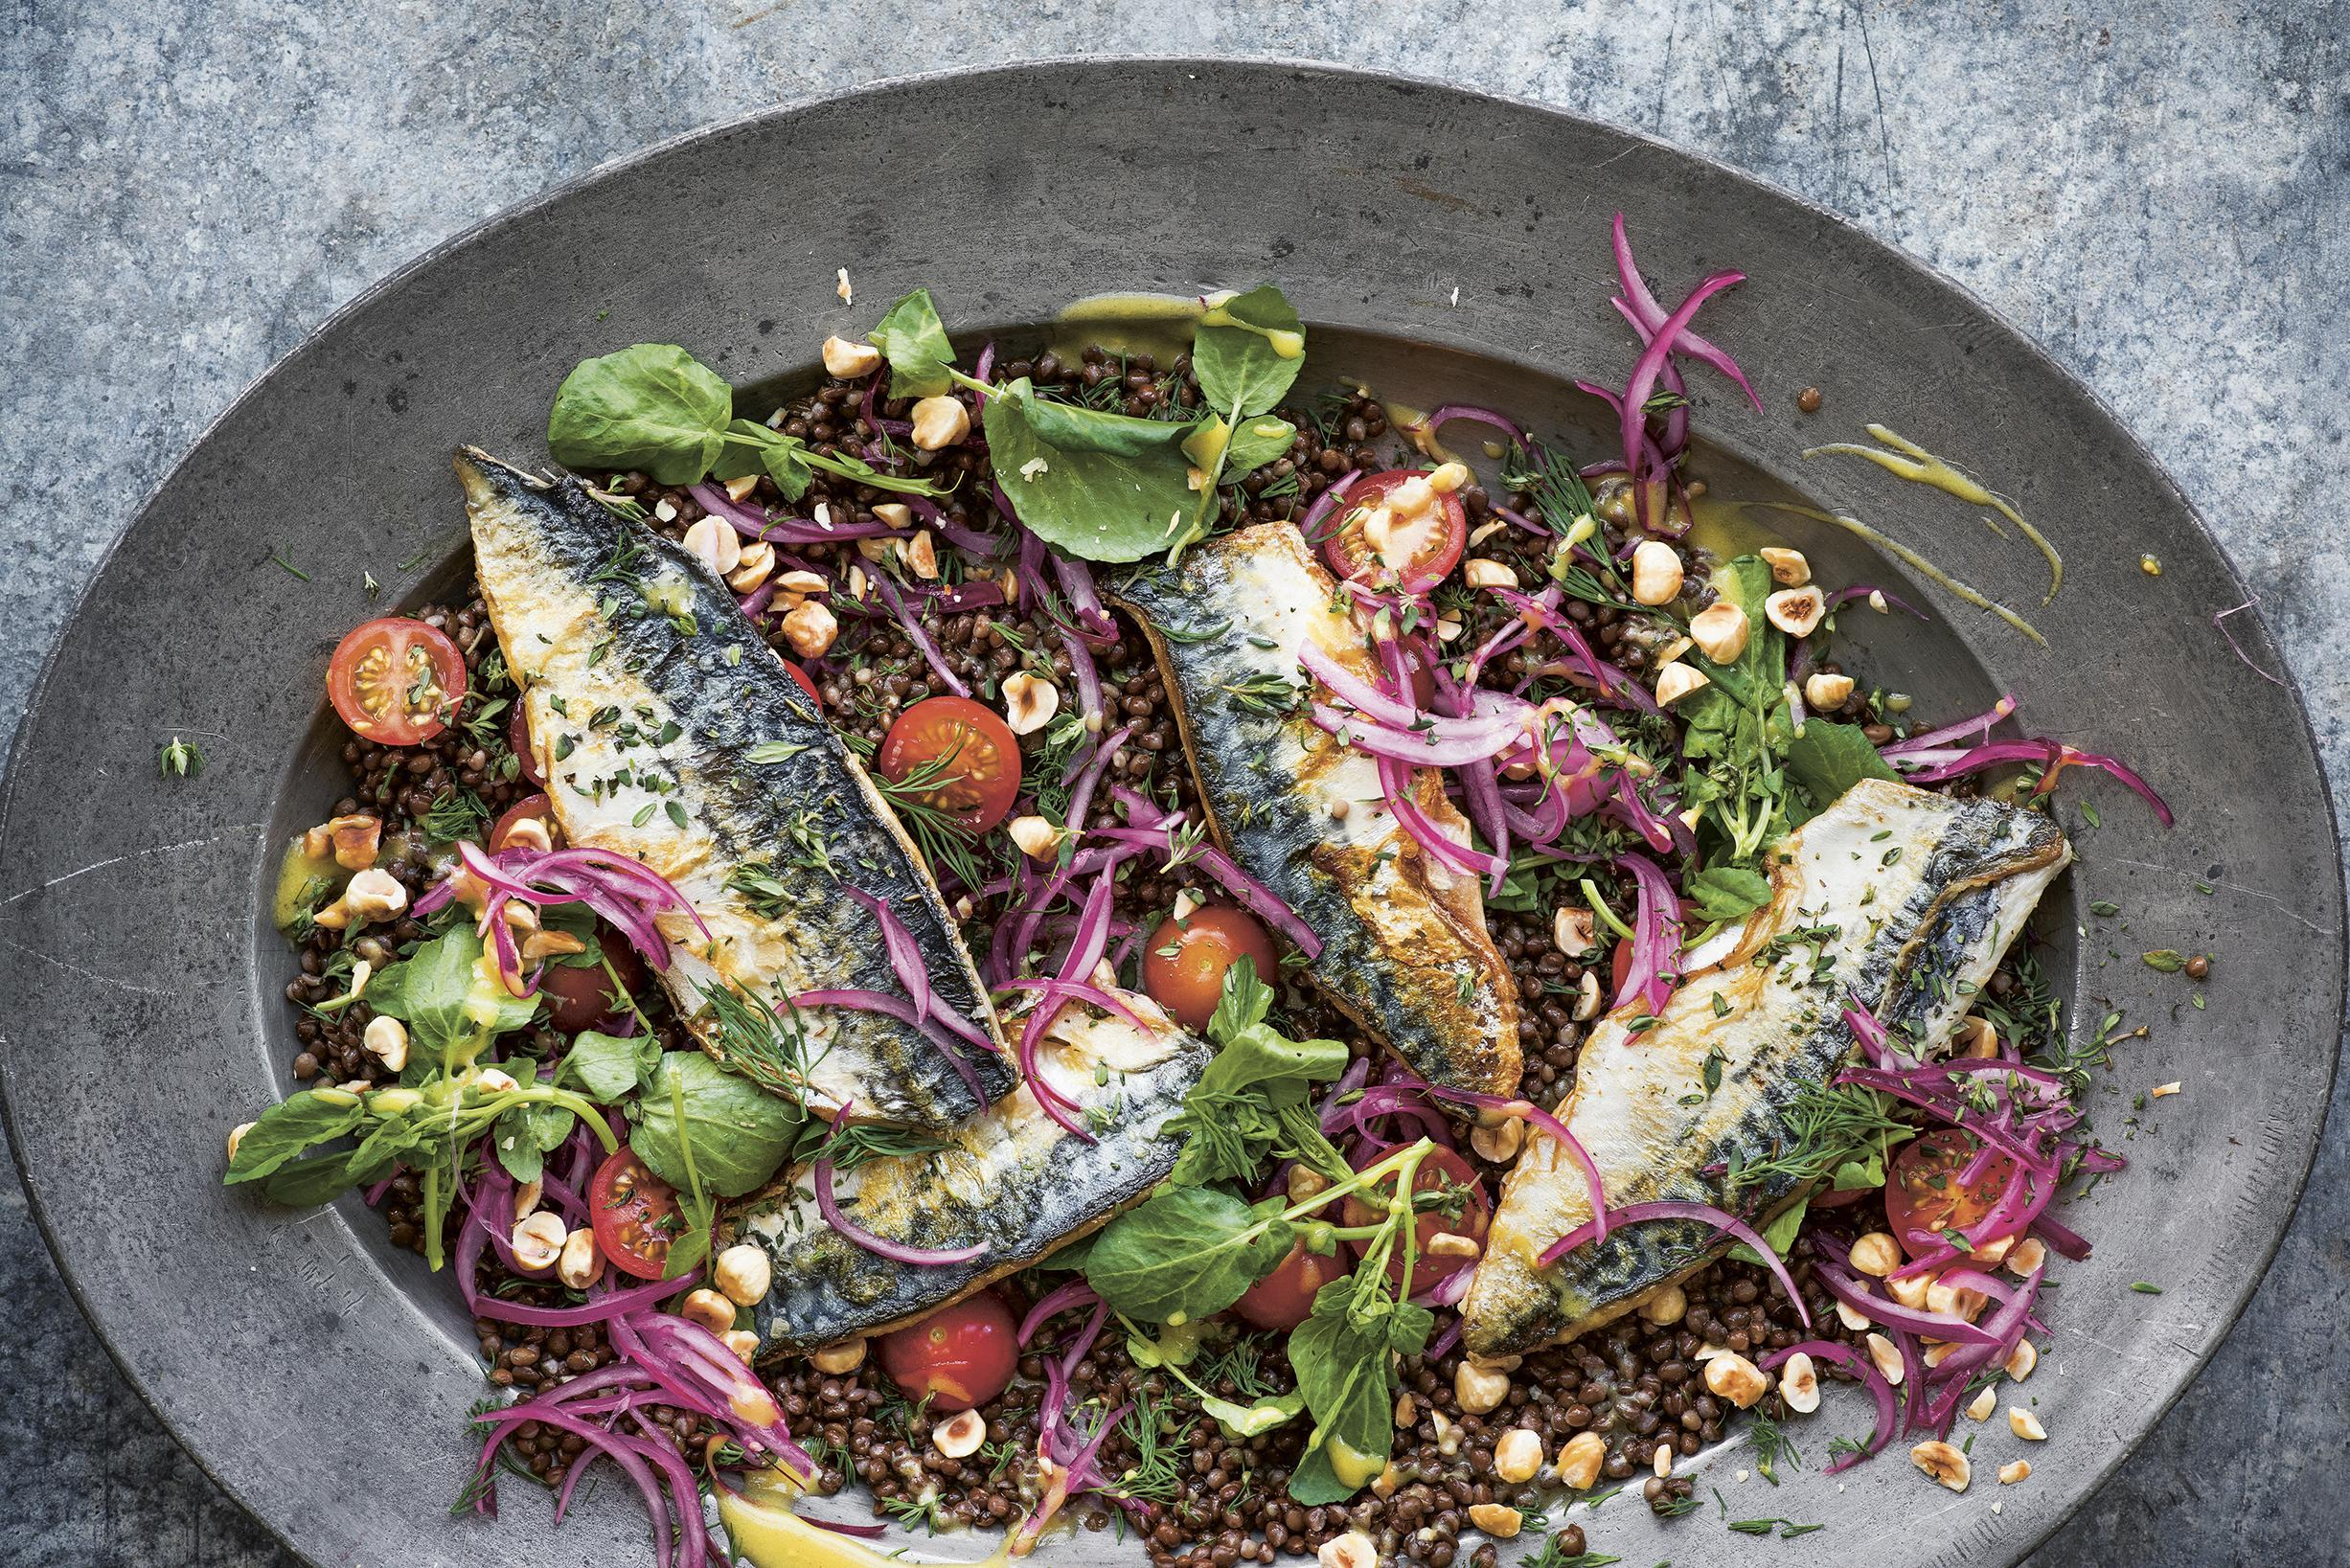 Lentil salad with pan-fried mackerel & hazelnuts